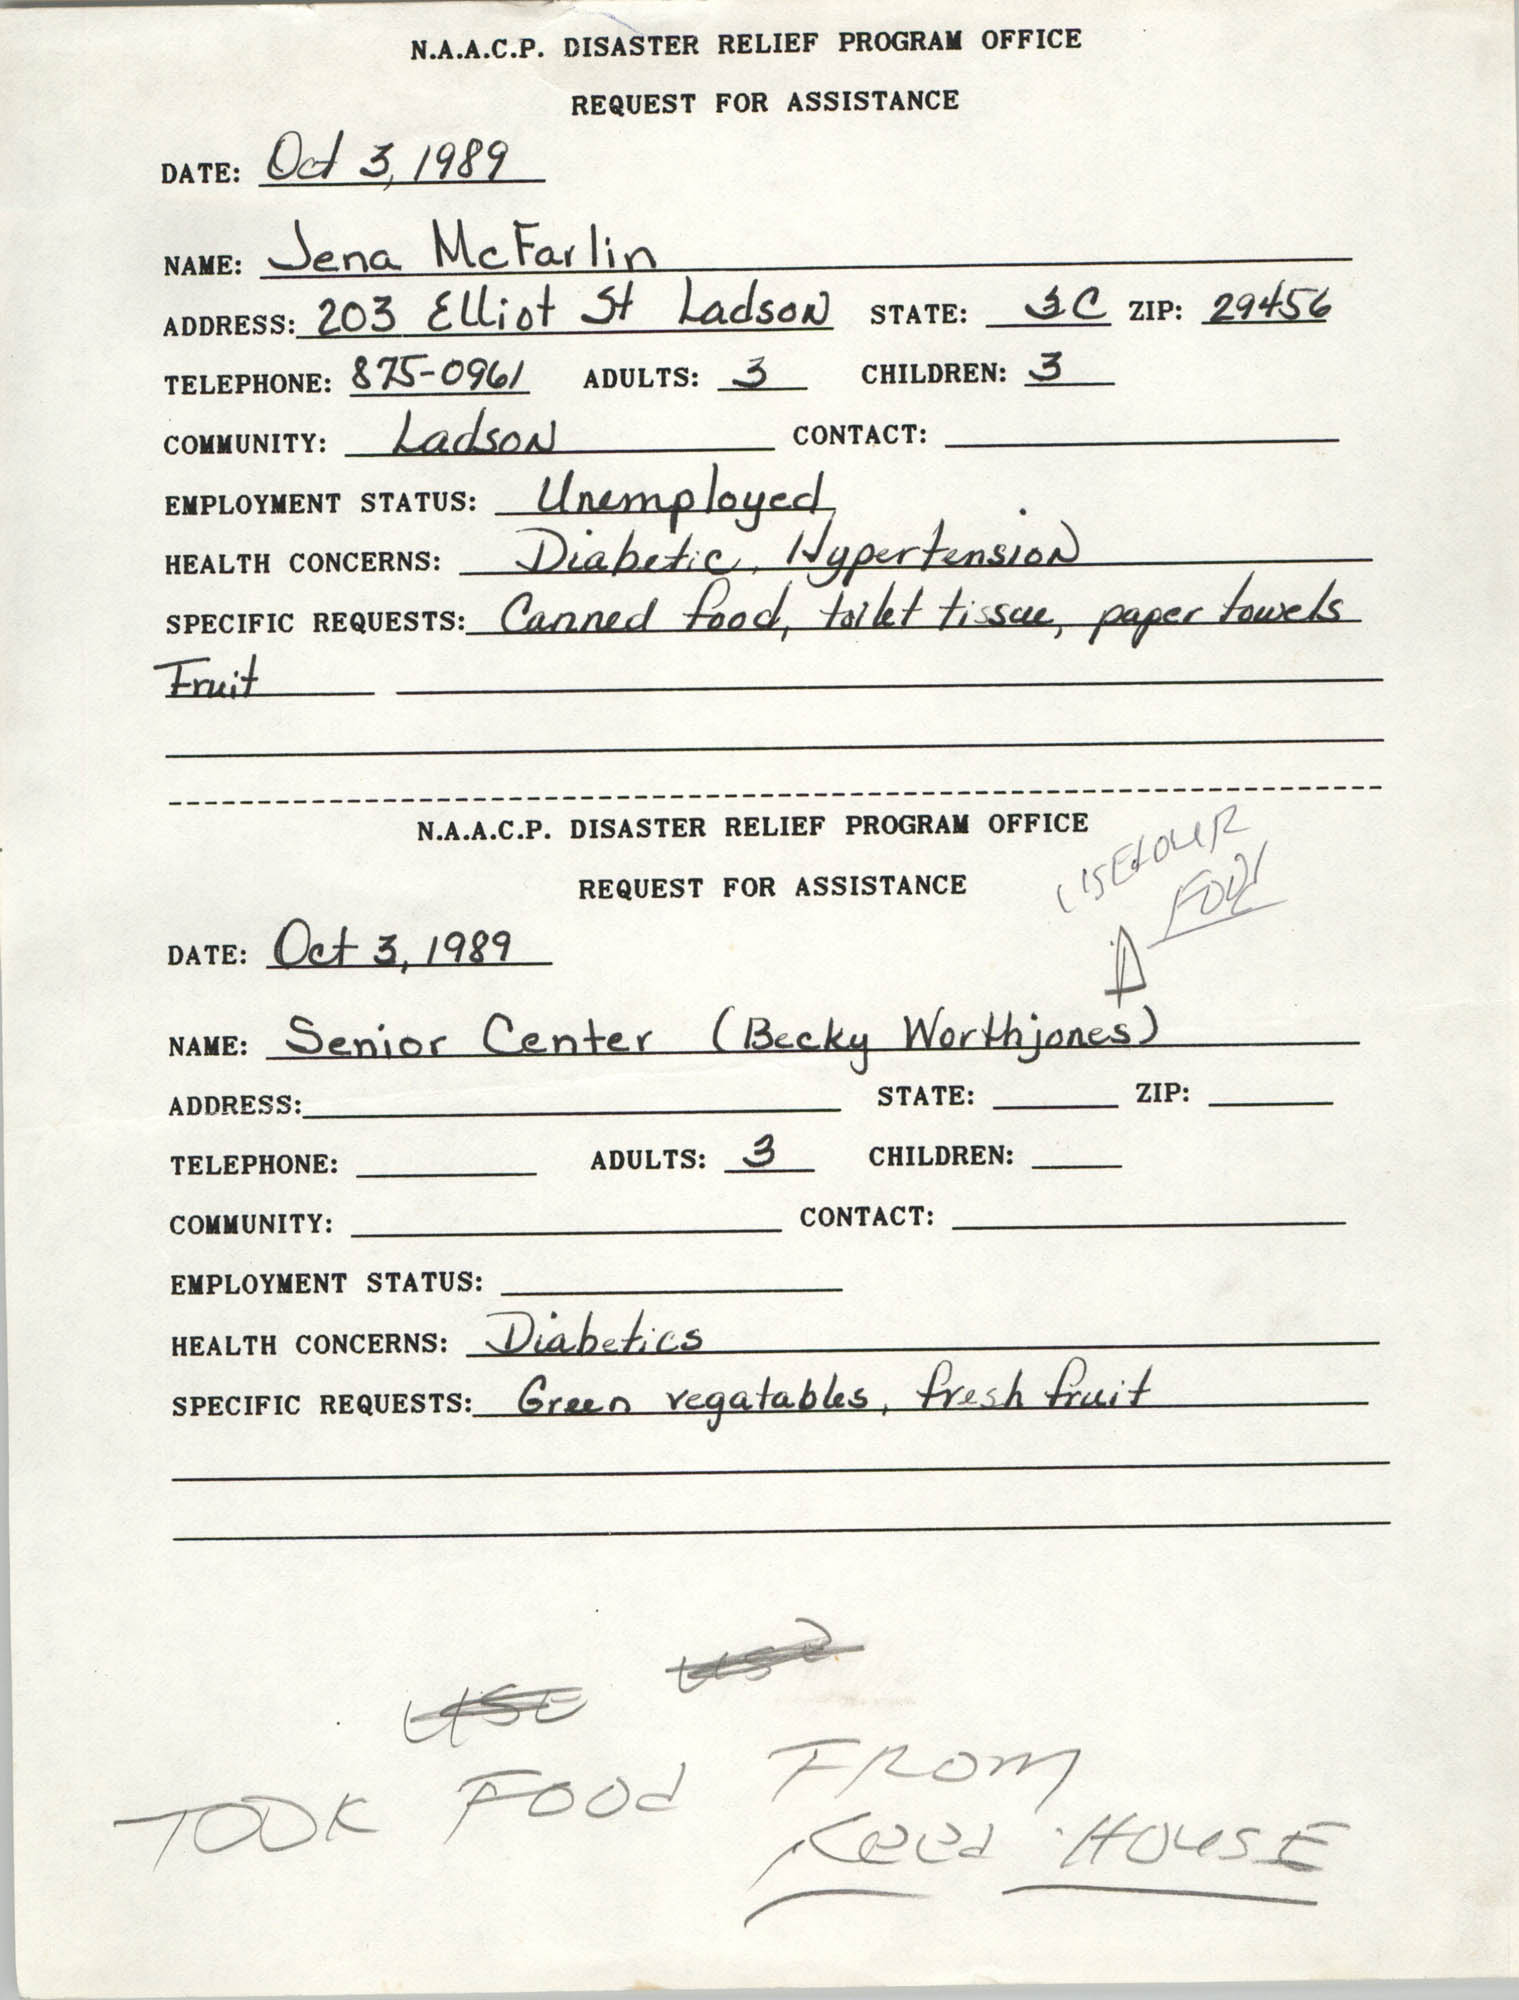 NAACP Disaster Relief Program Office, Hurricane Huge Requests for Assistance, 1989, Page 7